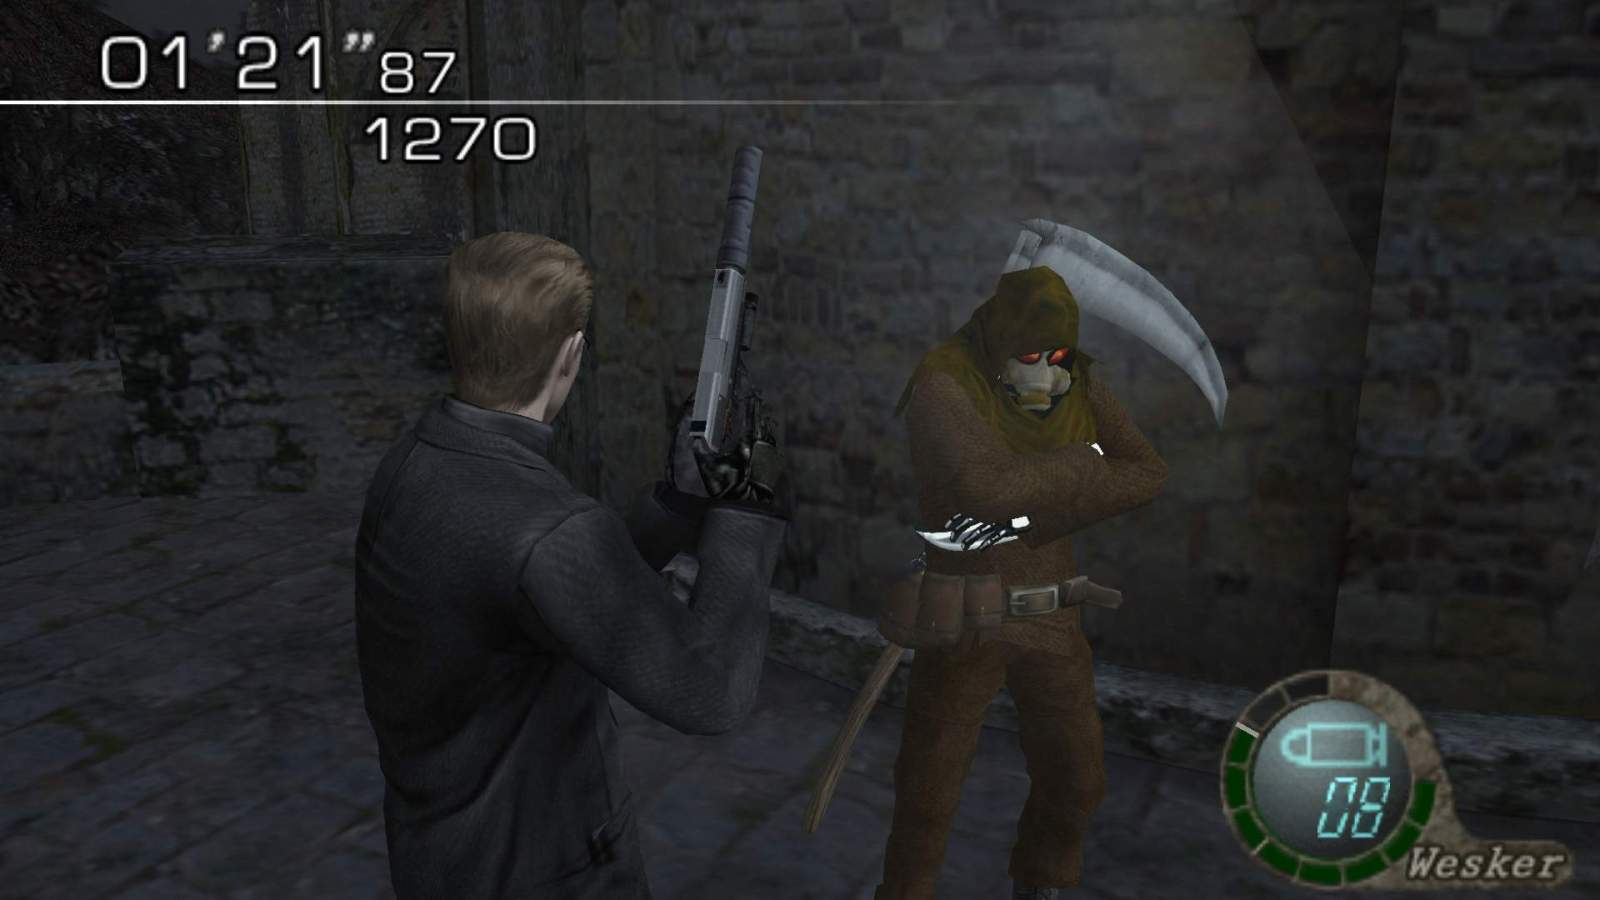 Hunk (Mr. Death) - Resident Evil The Mercenaries 3D - por Iluminados v.1.0 303fyoy